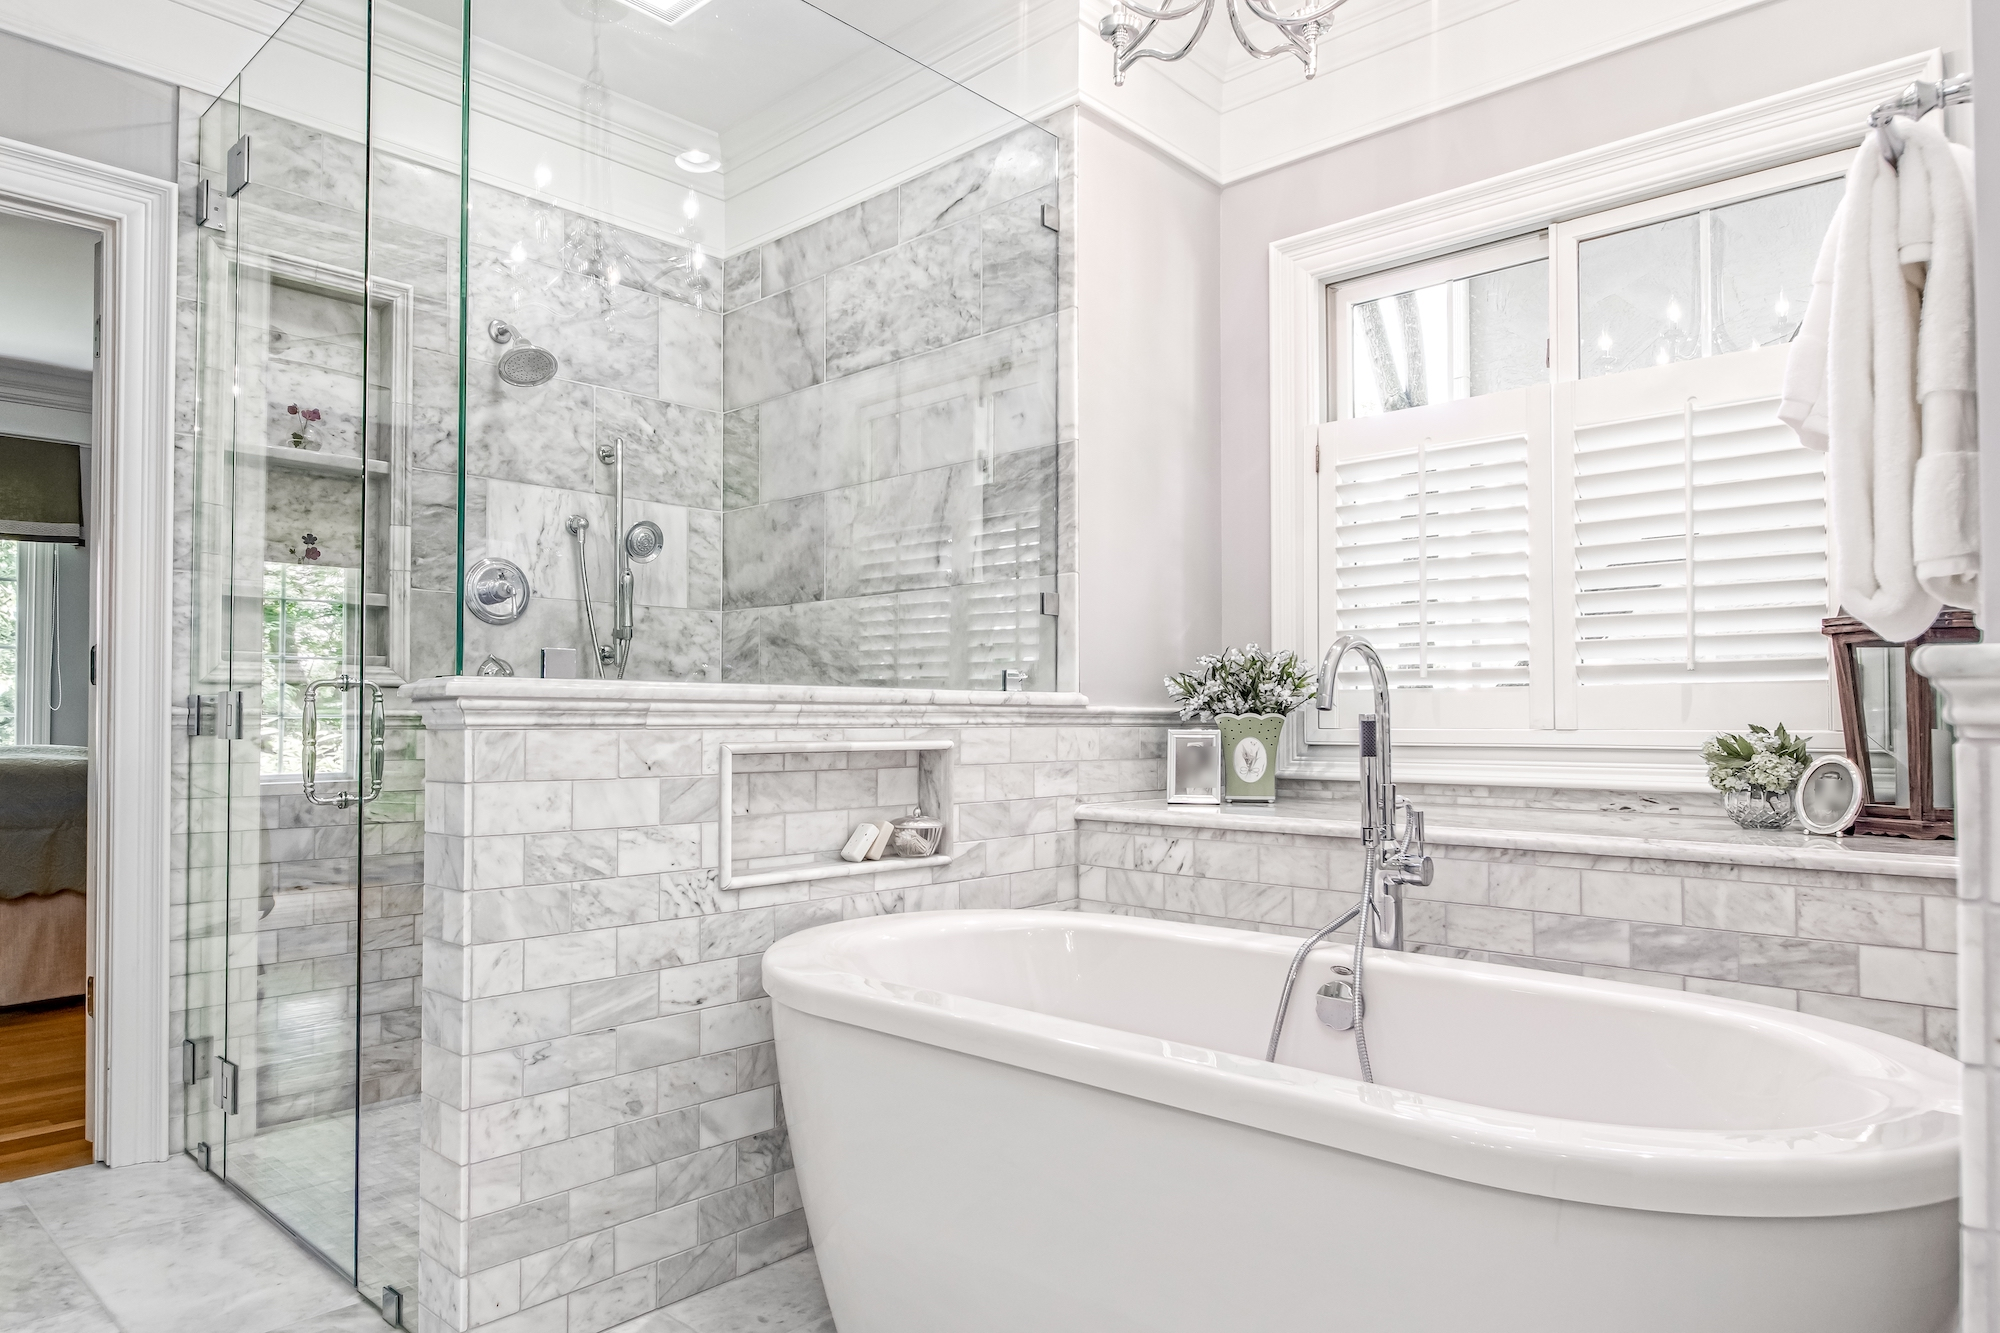 Immaculate Bath Remodel in Powell Ohio | Bathroom Remodel ...